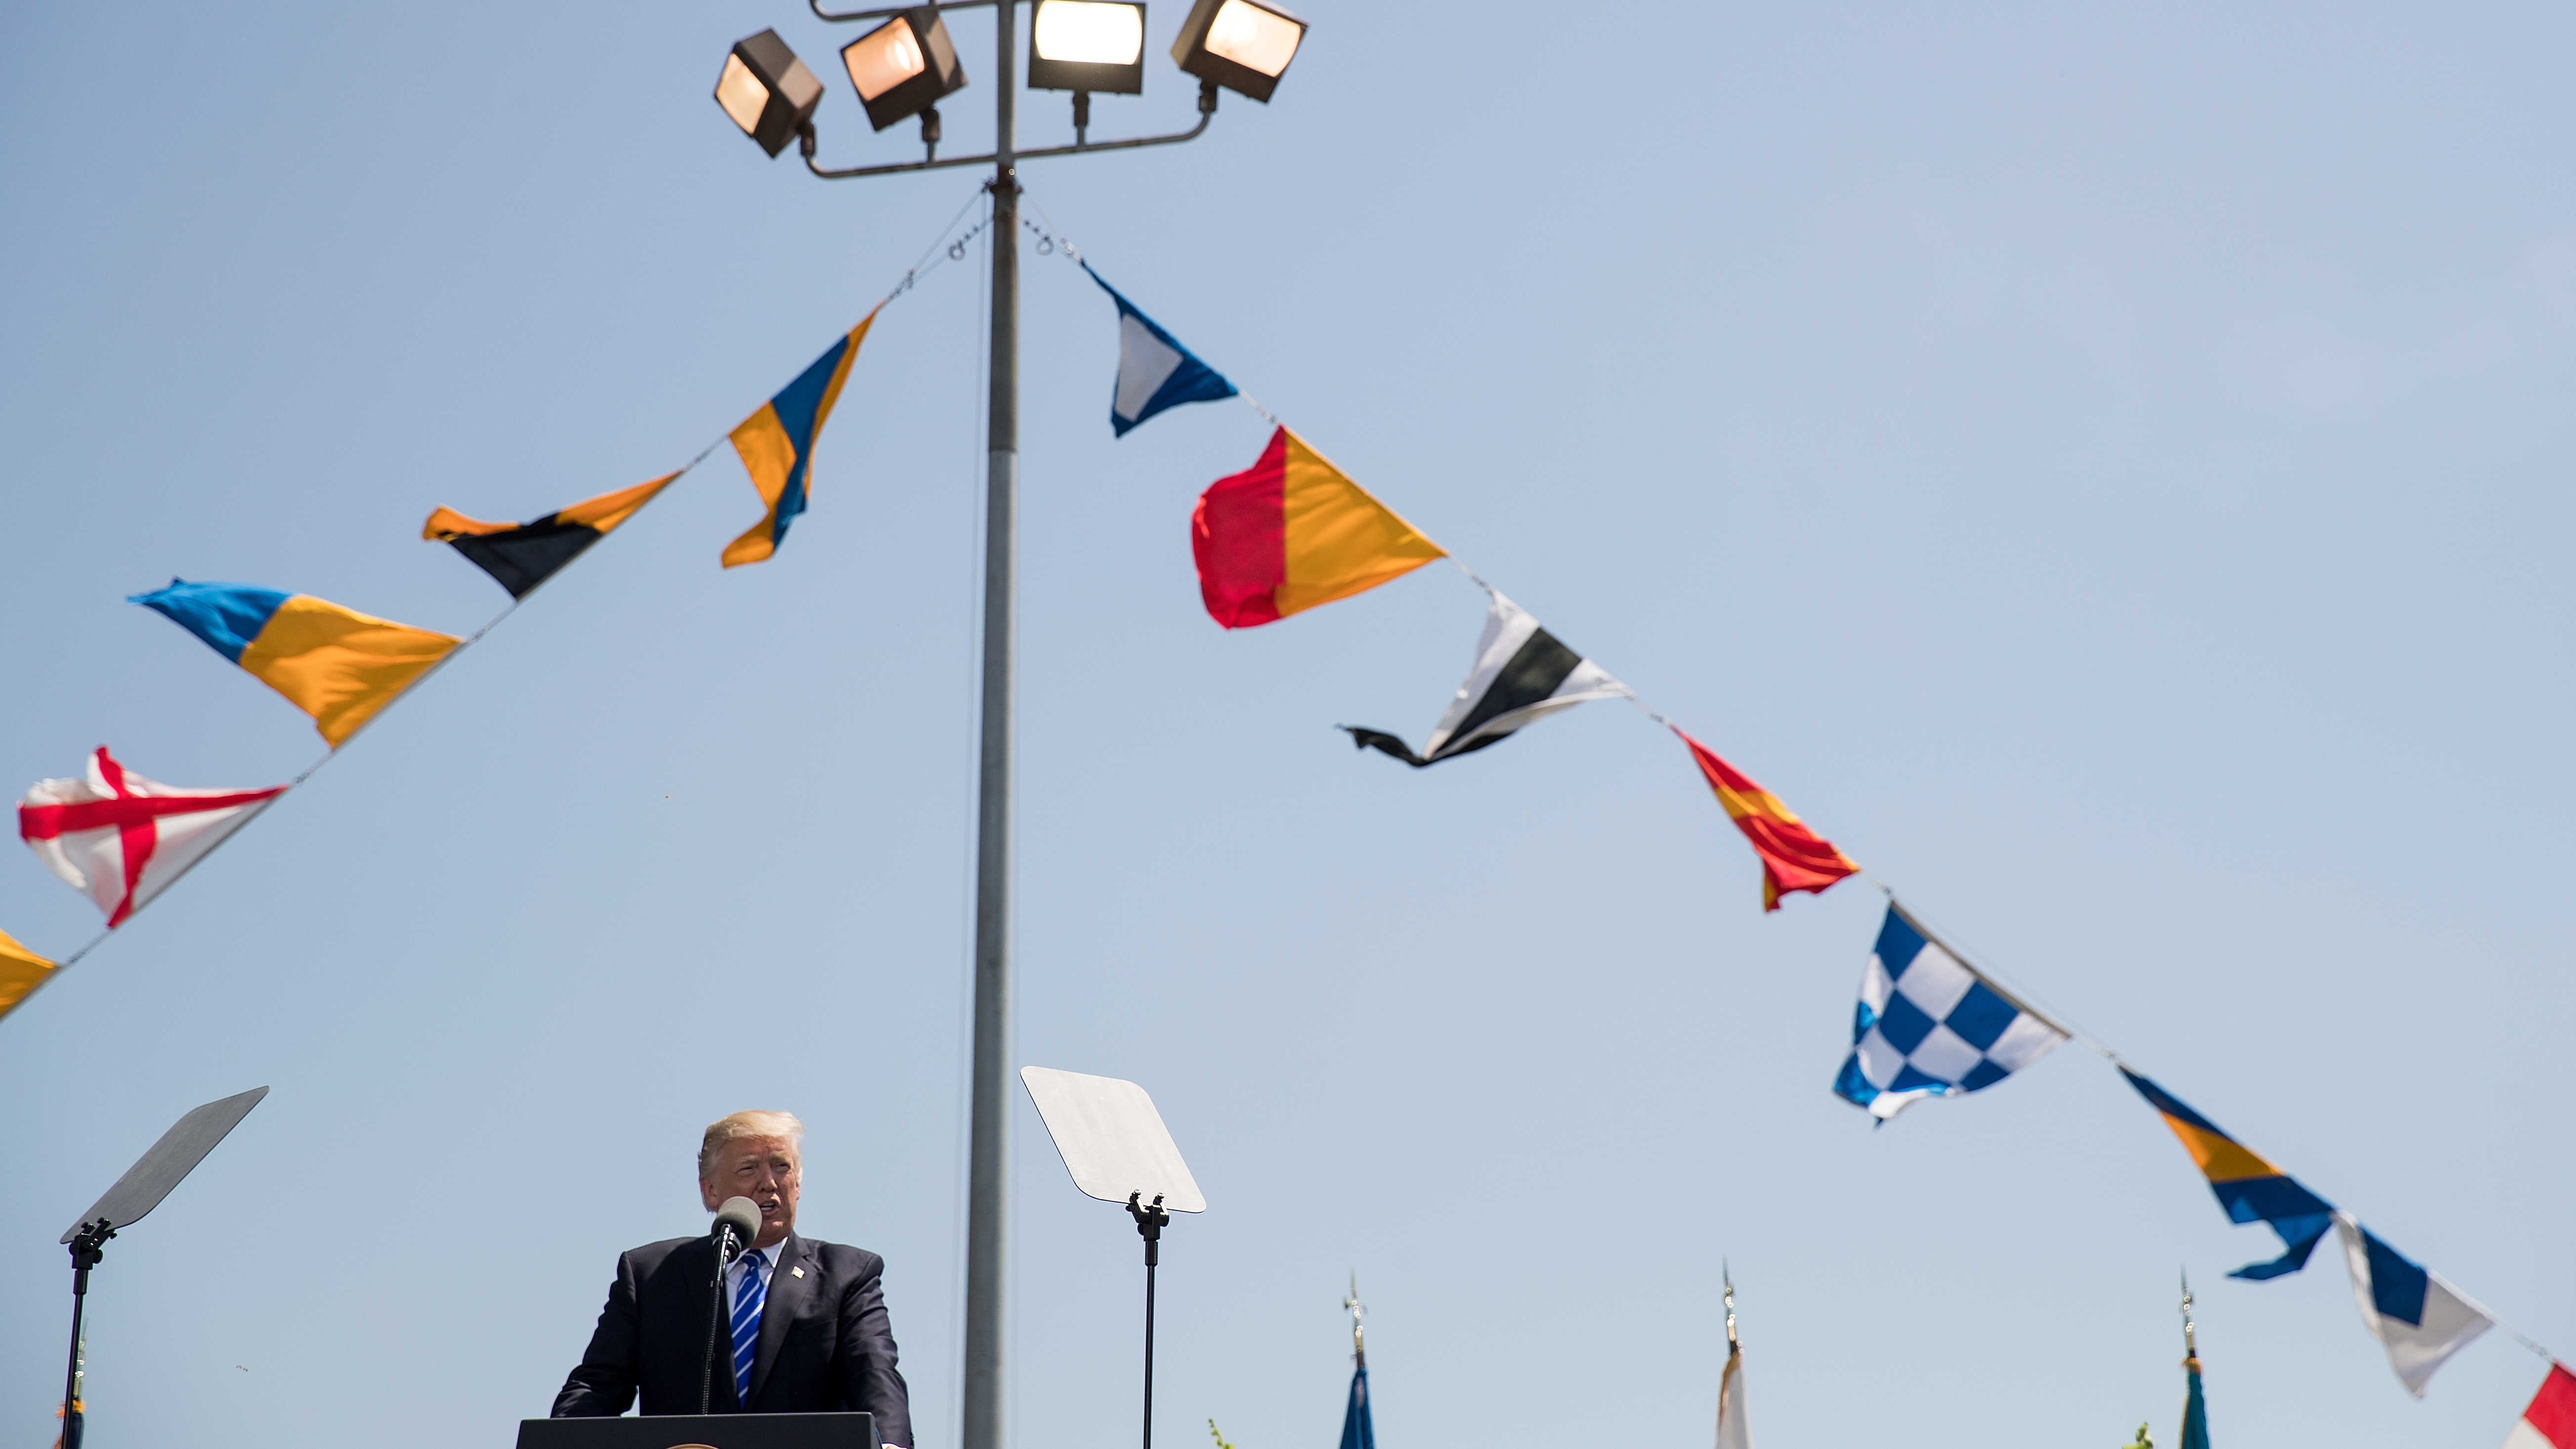 President Donald Trump delivered the commencement address at the U.S. Coast Guard Academy in New London, Conn. This is President Trump